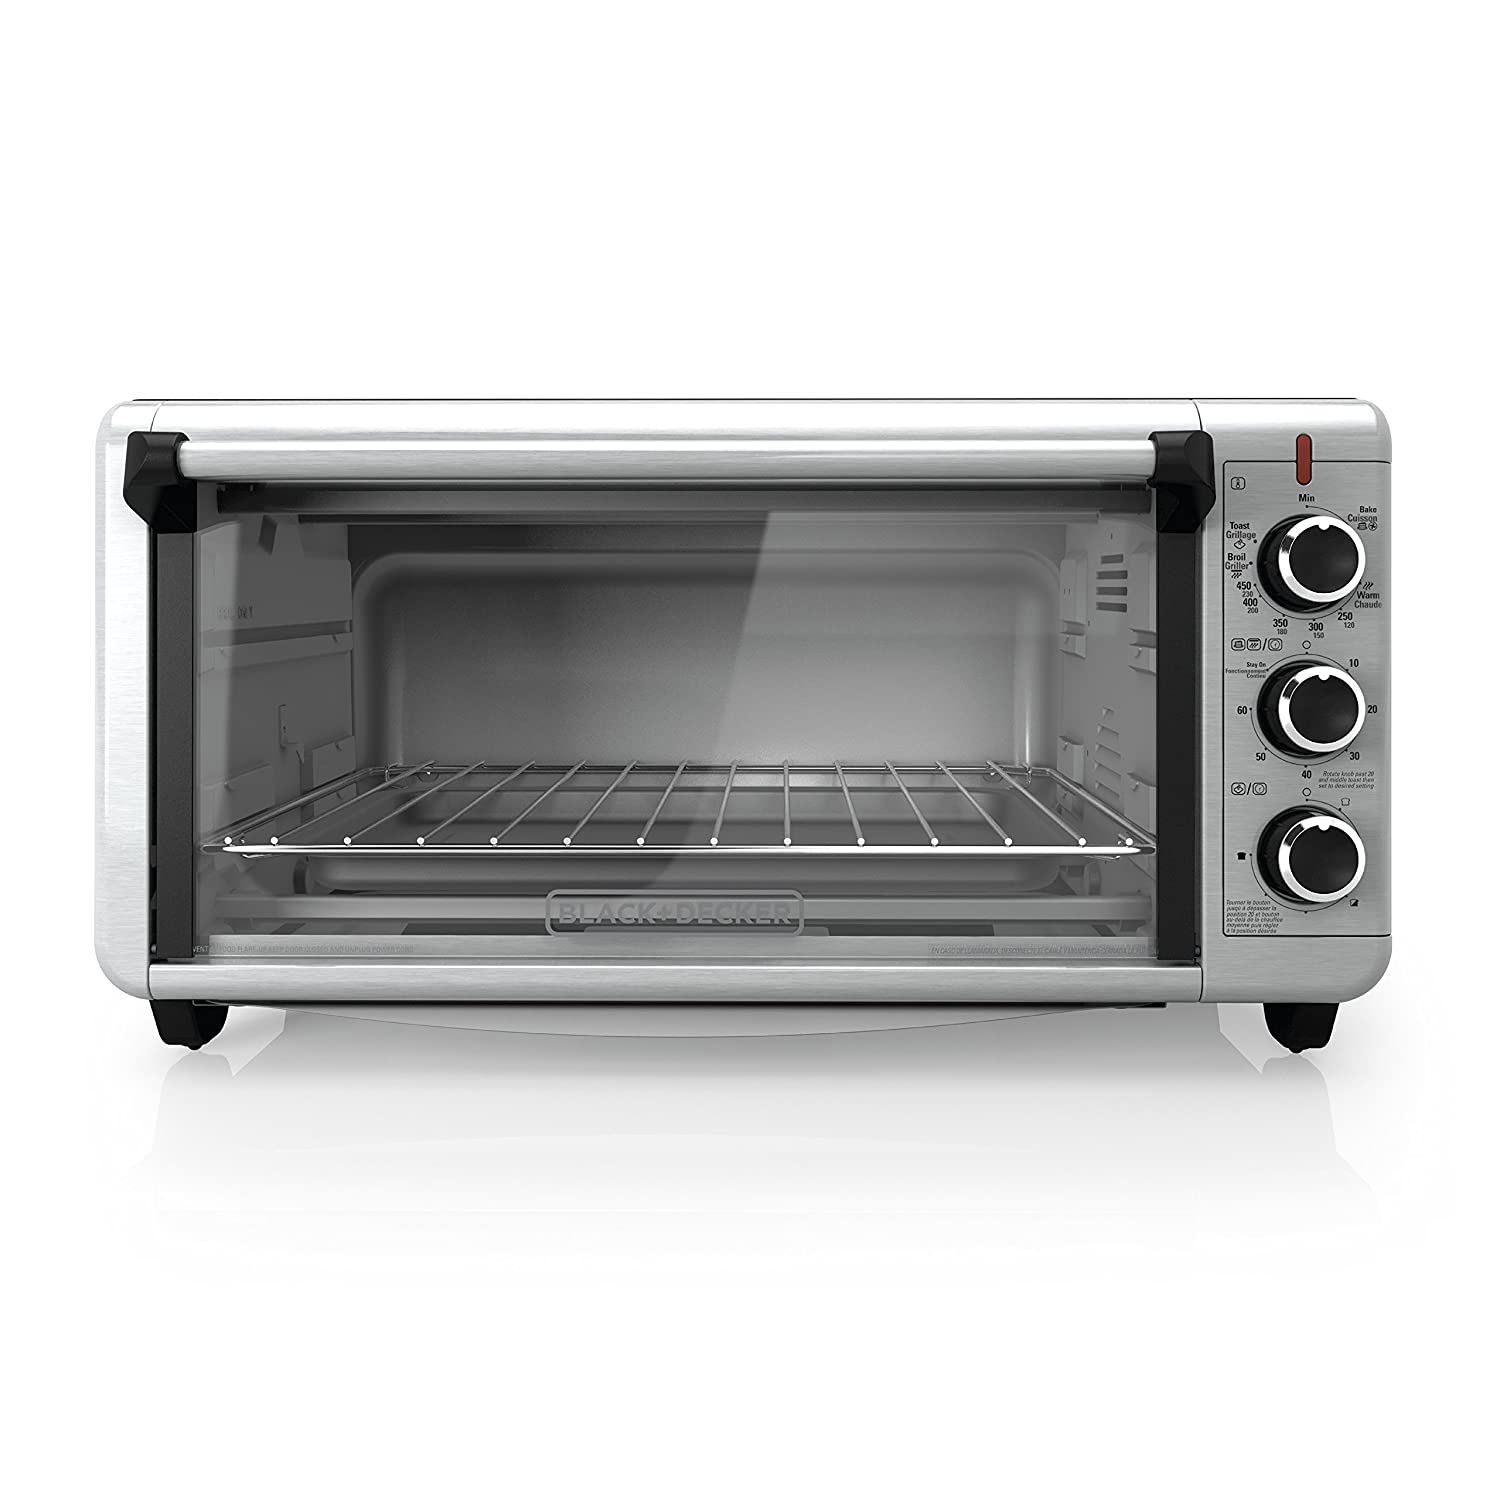 Best Countertop Convection Oven Reviews 2019: Top 5+ Recommended 2 #cookymom